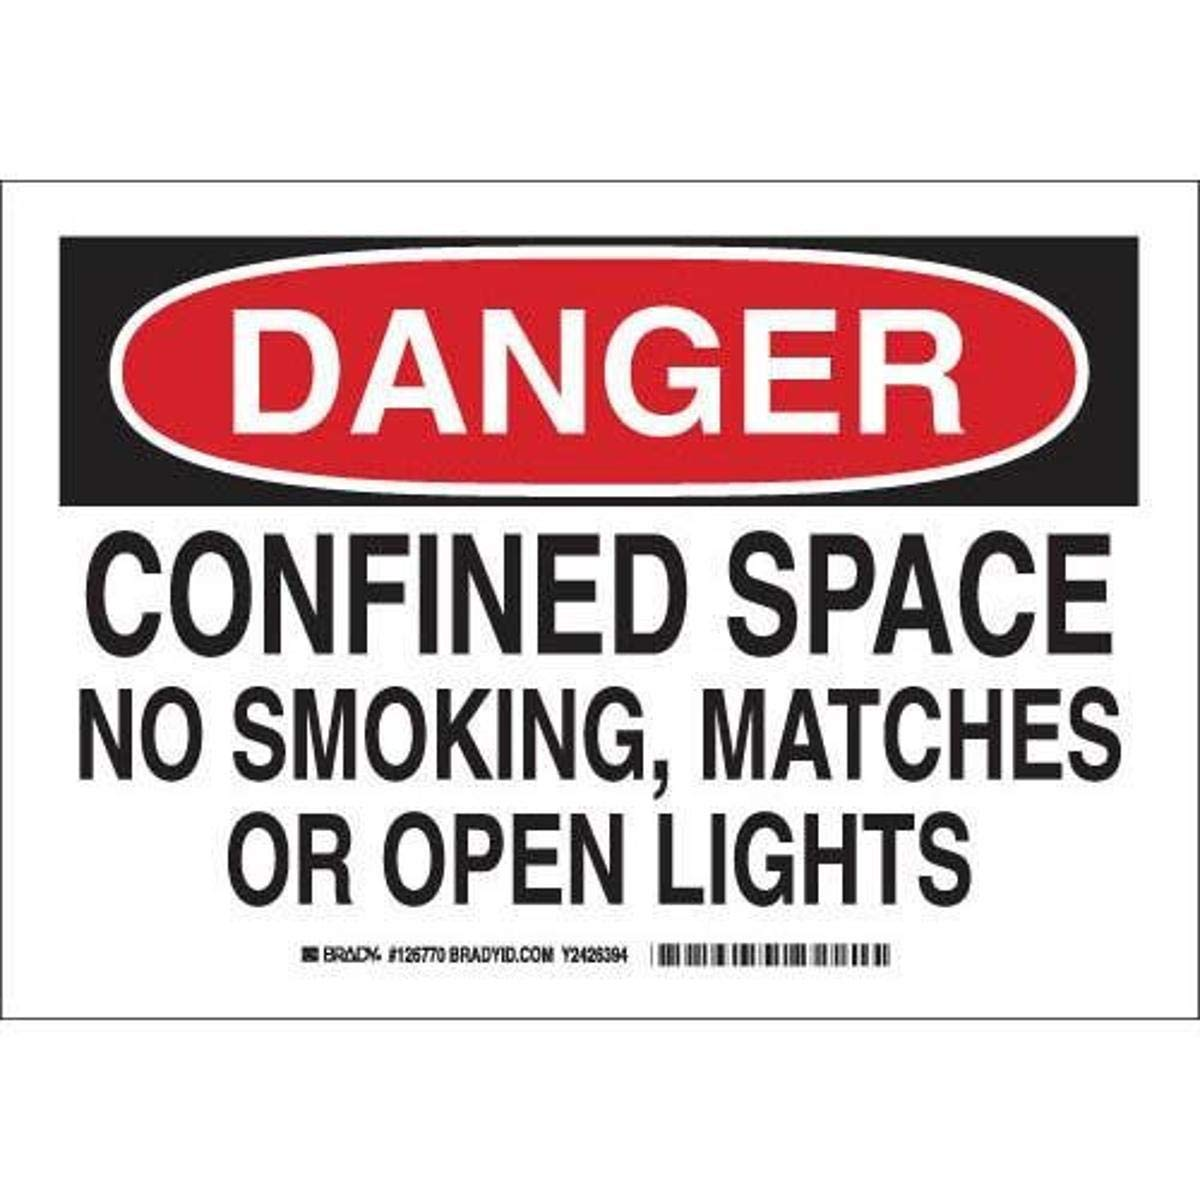 Brady 126770 Confined Space Sign, LegendConfined Space No Smoking, Matches Or Open Lights, 7 Height, 10 Width, Black and Red on White